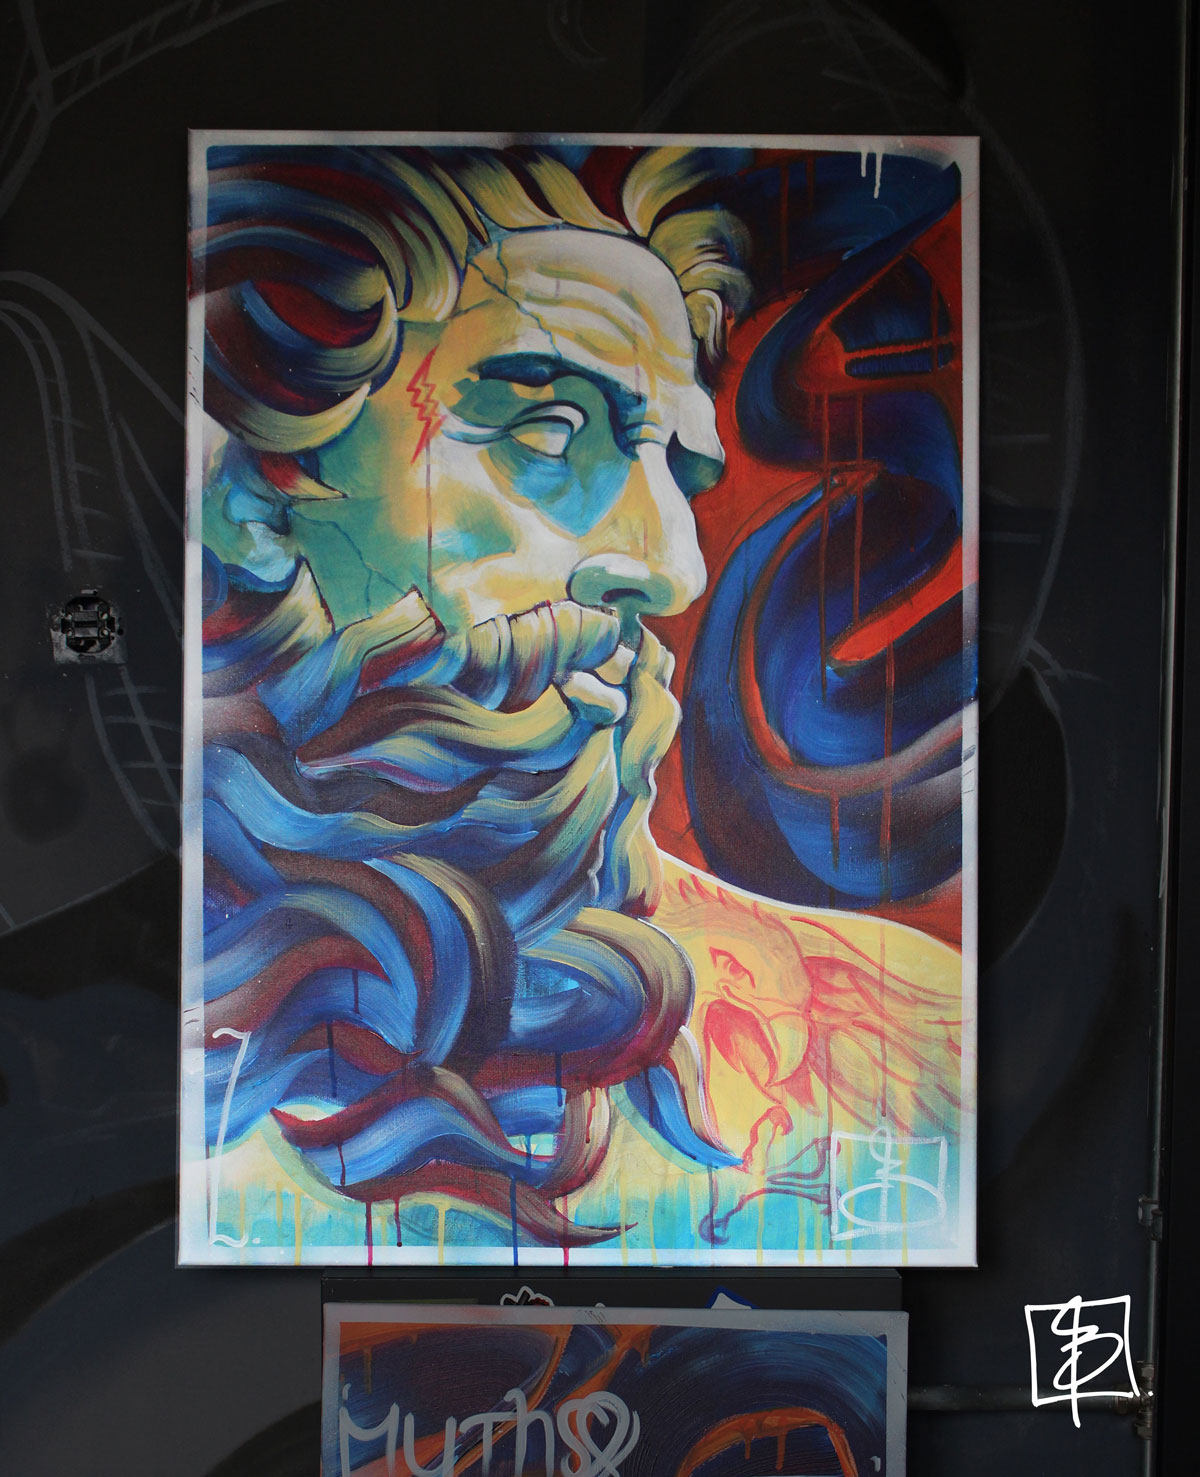 Zeus / 90x70cm canvas / Price on request